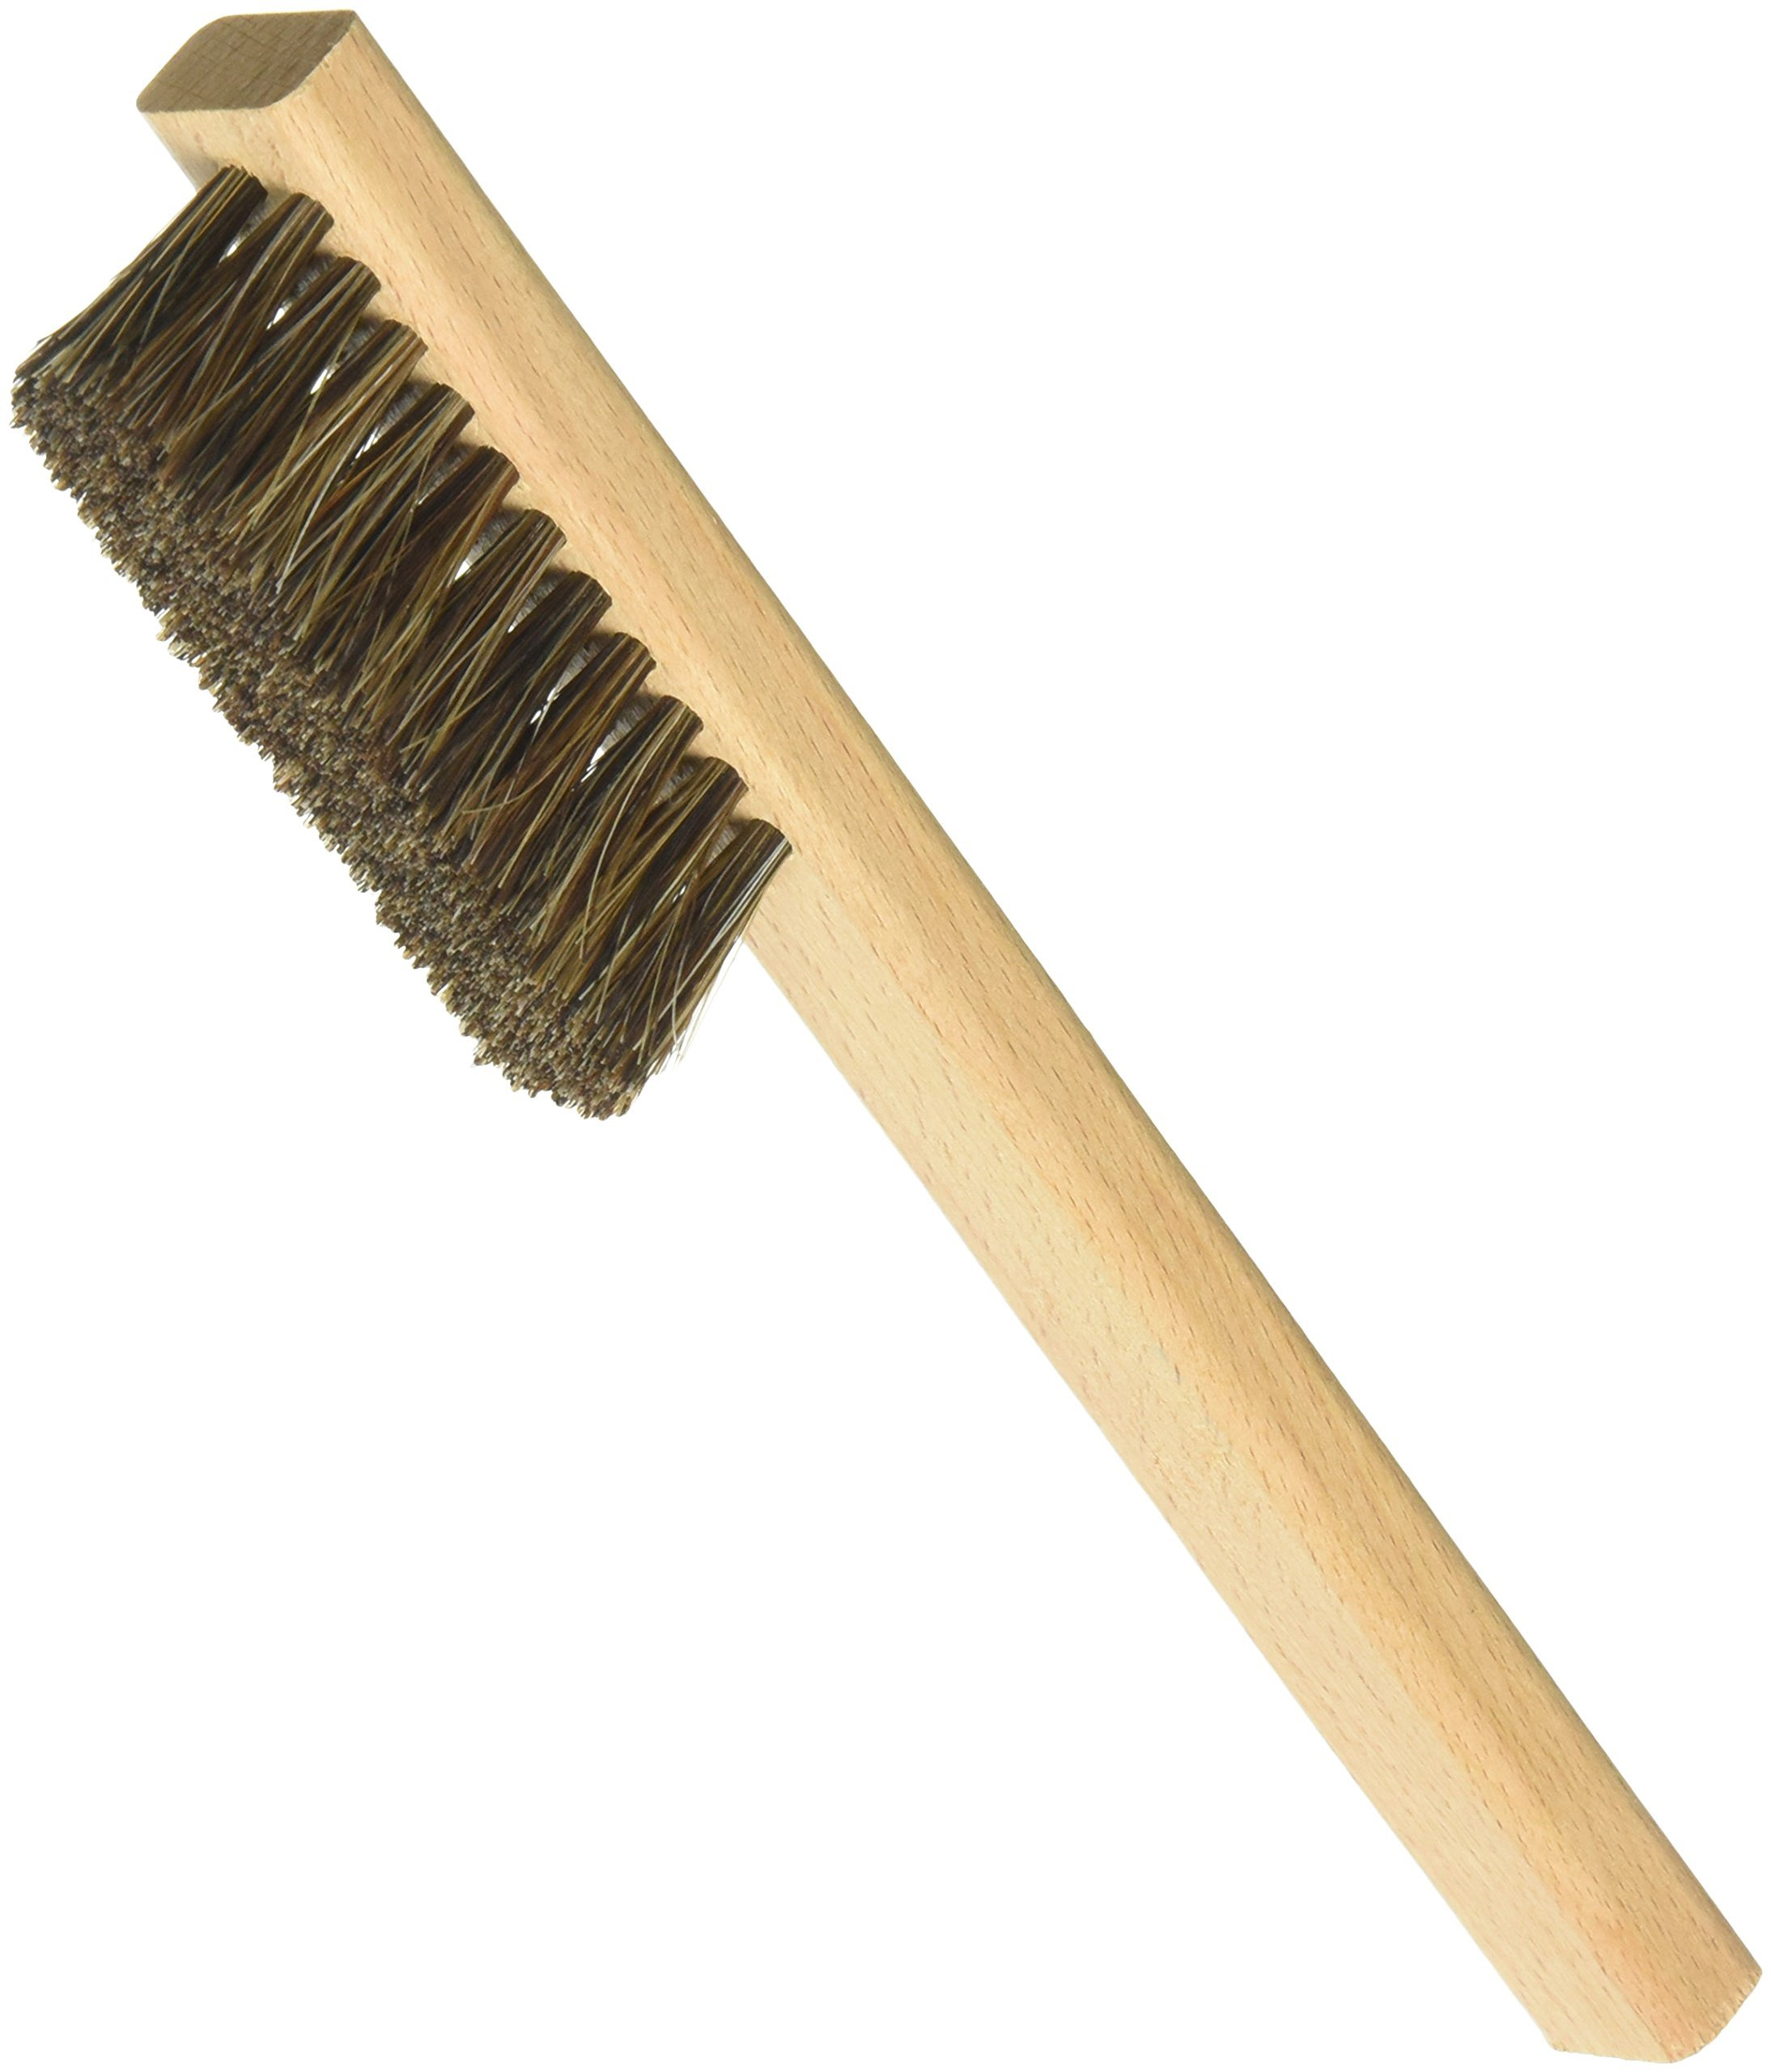 Hagerty's Horsehair Silver Brush